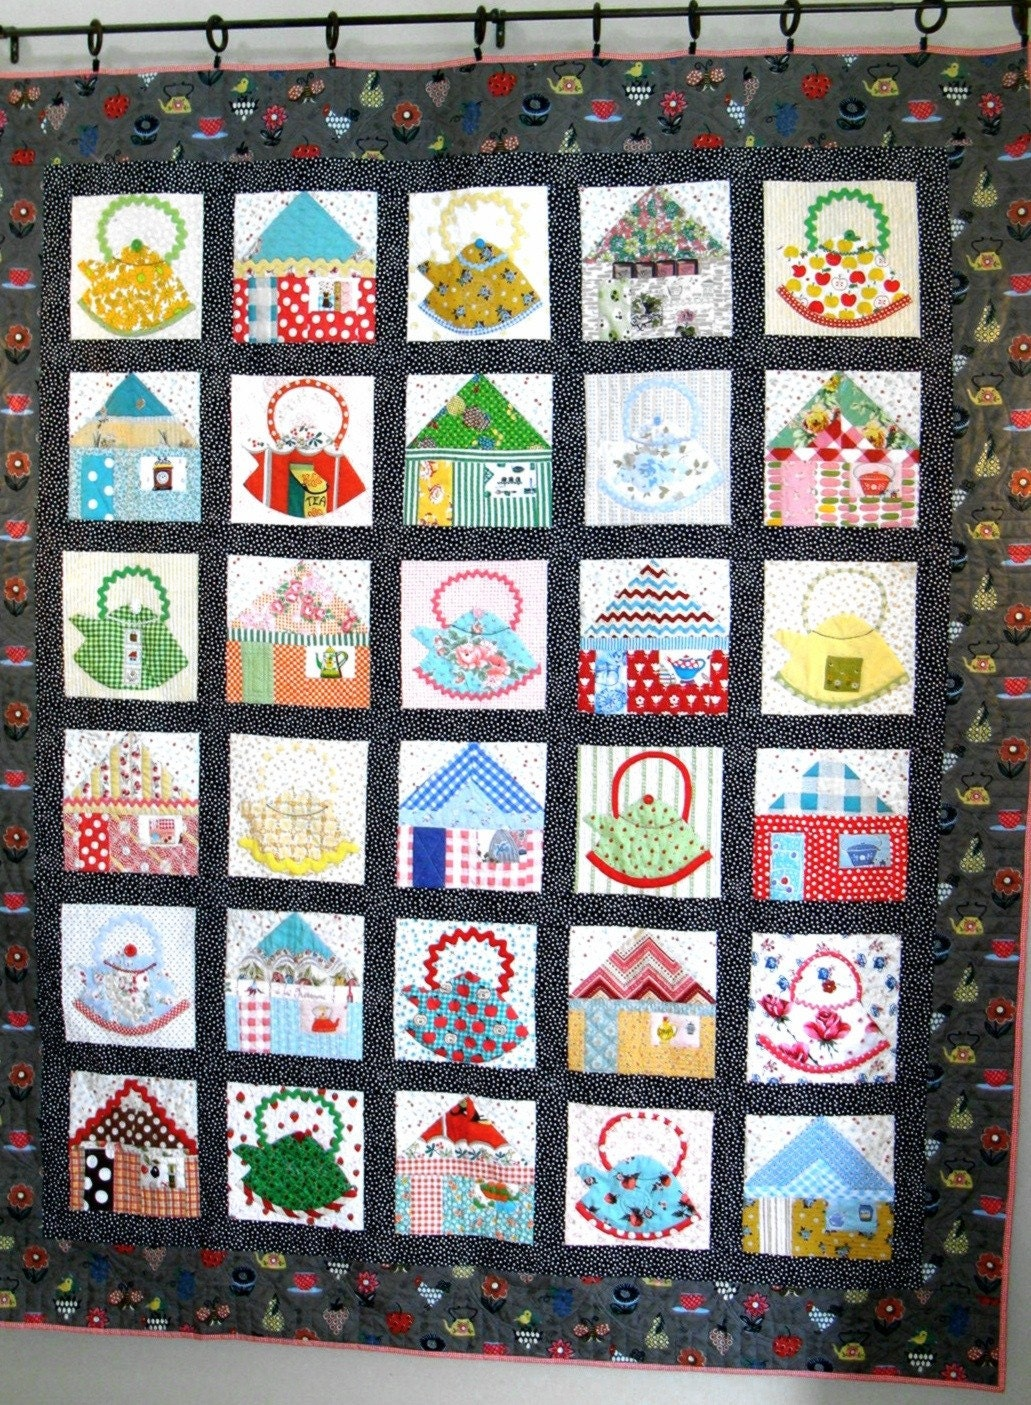 Kettles in the kitchen quilt pattern by fredashive on etsy for Kitchen quilting ideas